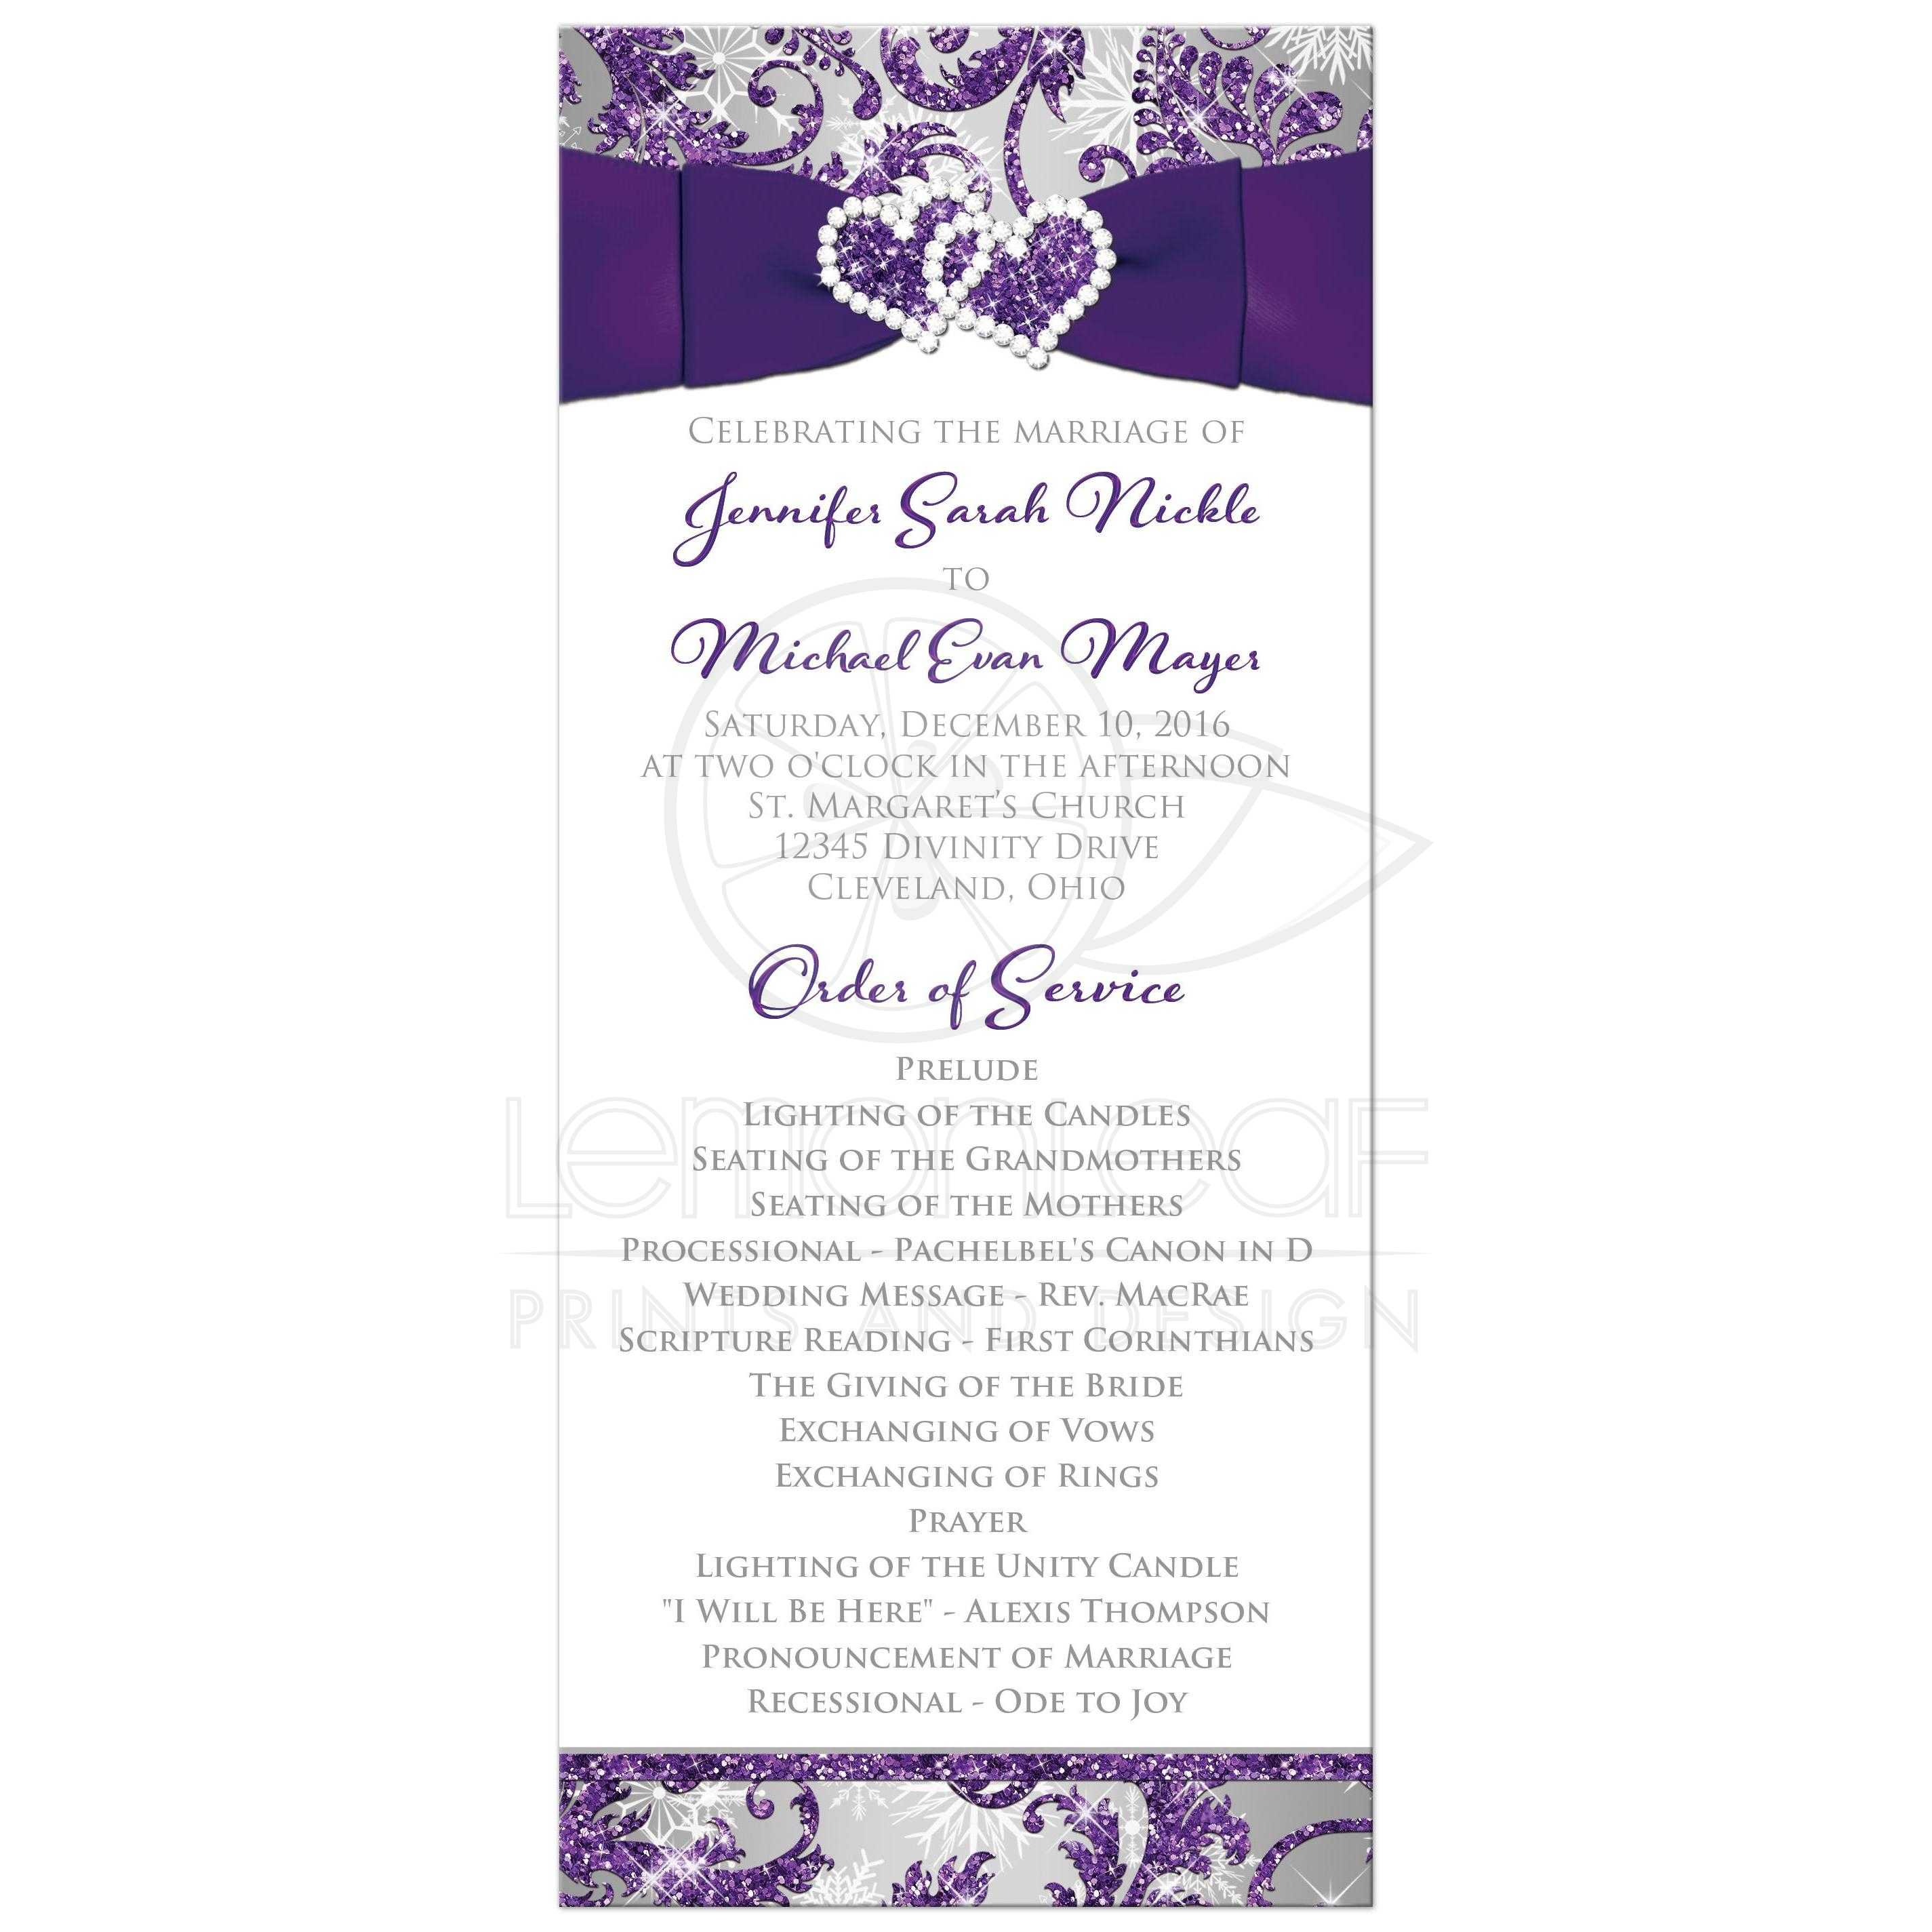 Winter Wonderland Wedding Program | Purple, Silver, White Snowflakes ...